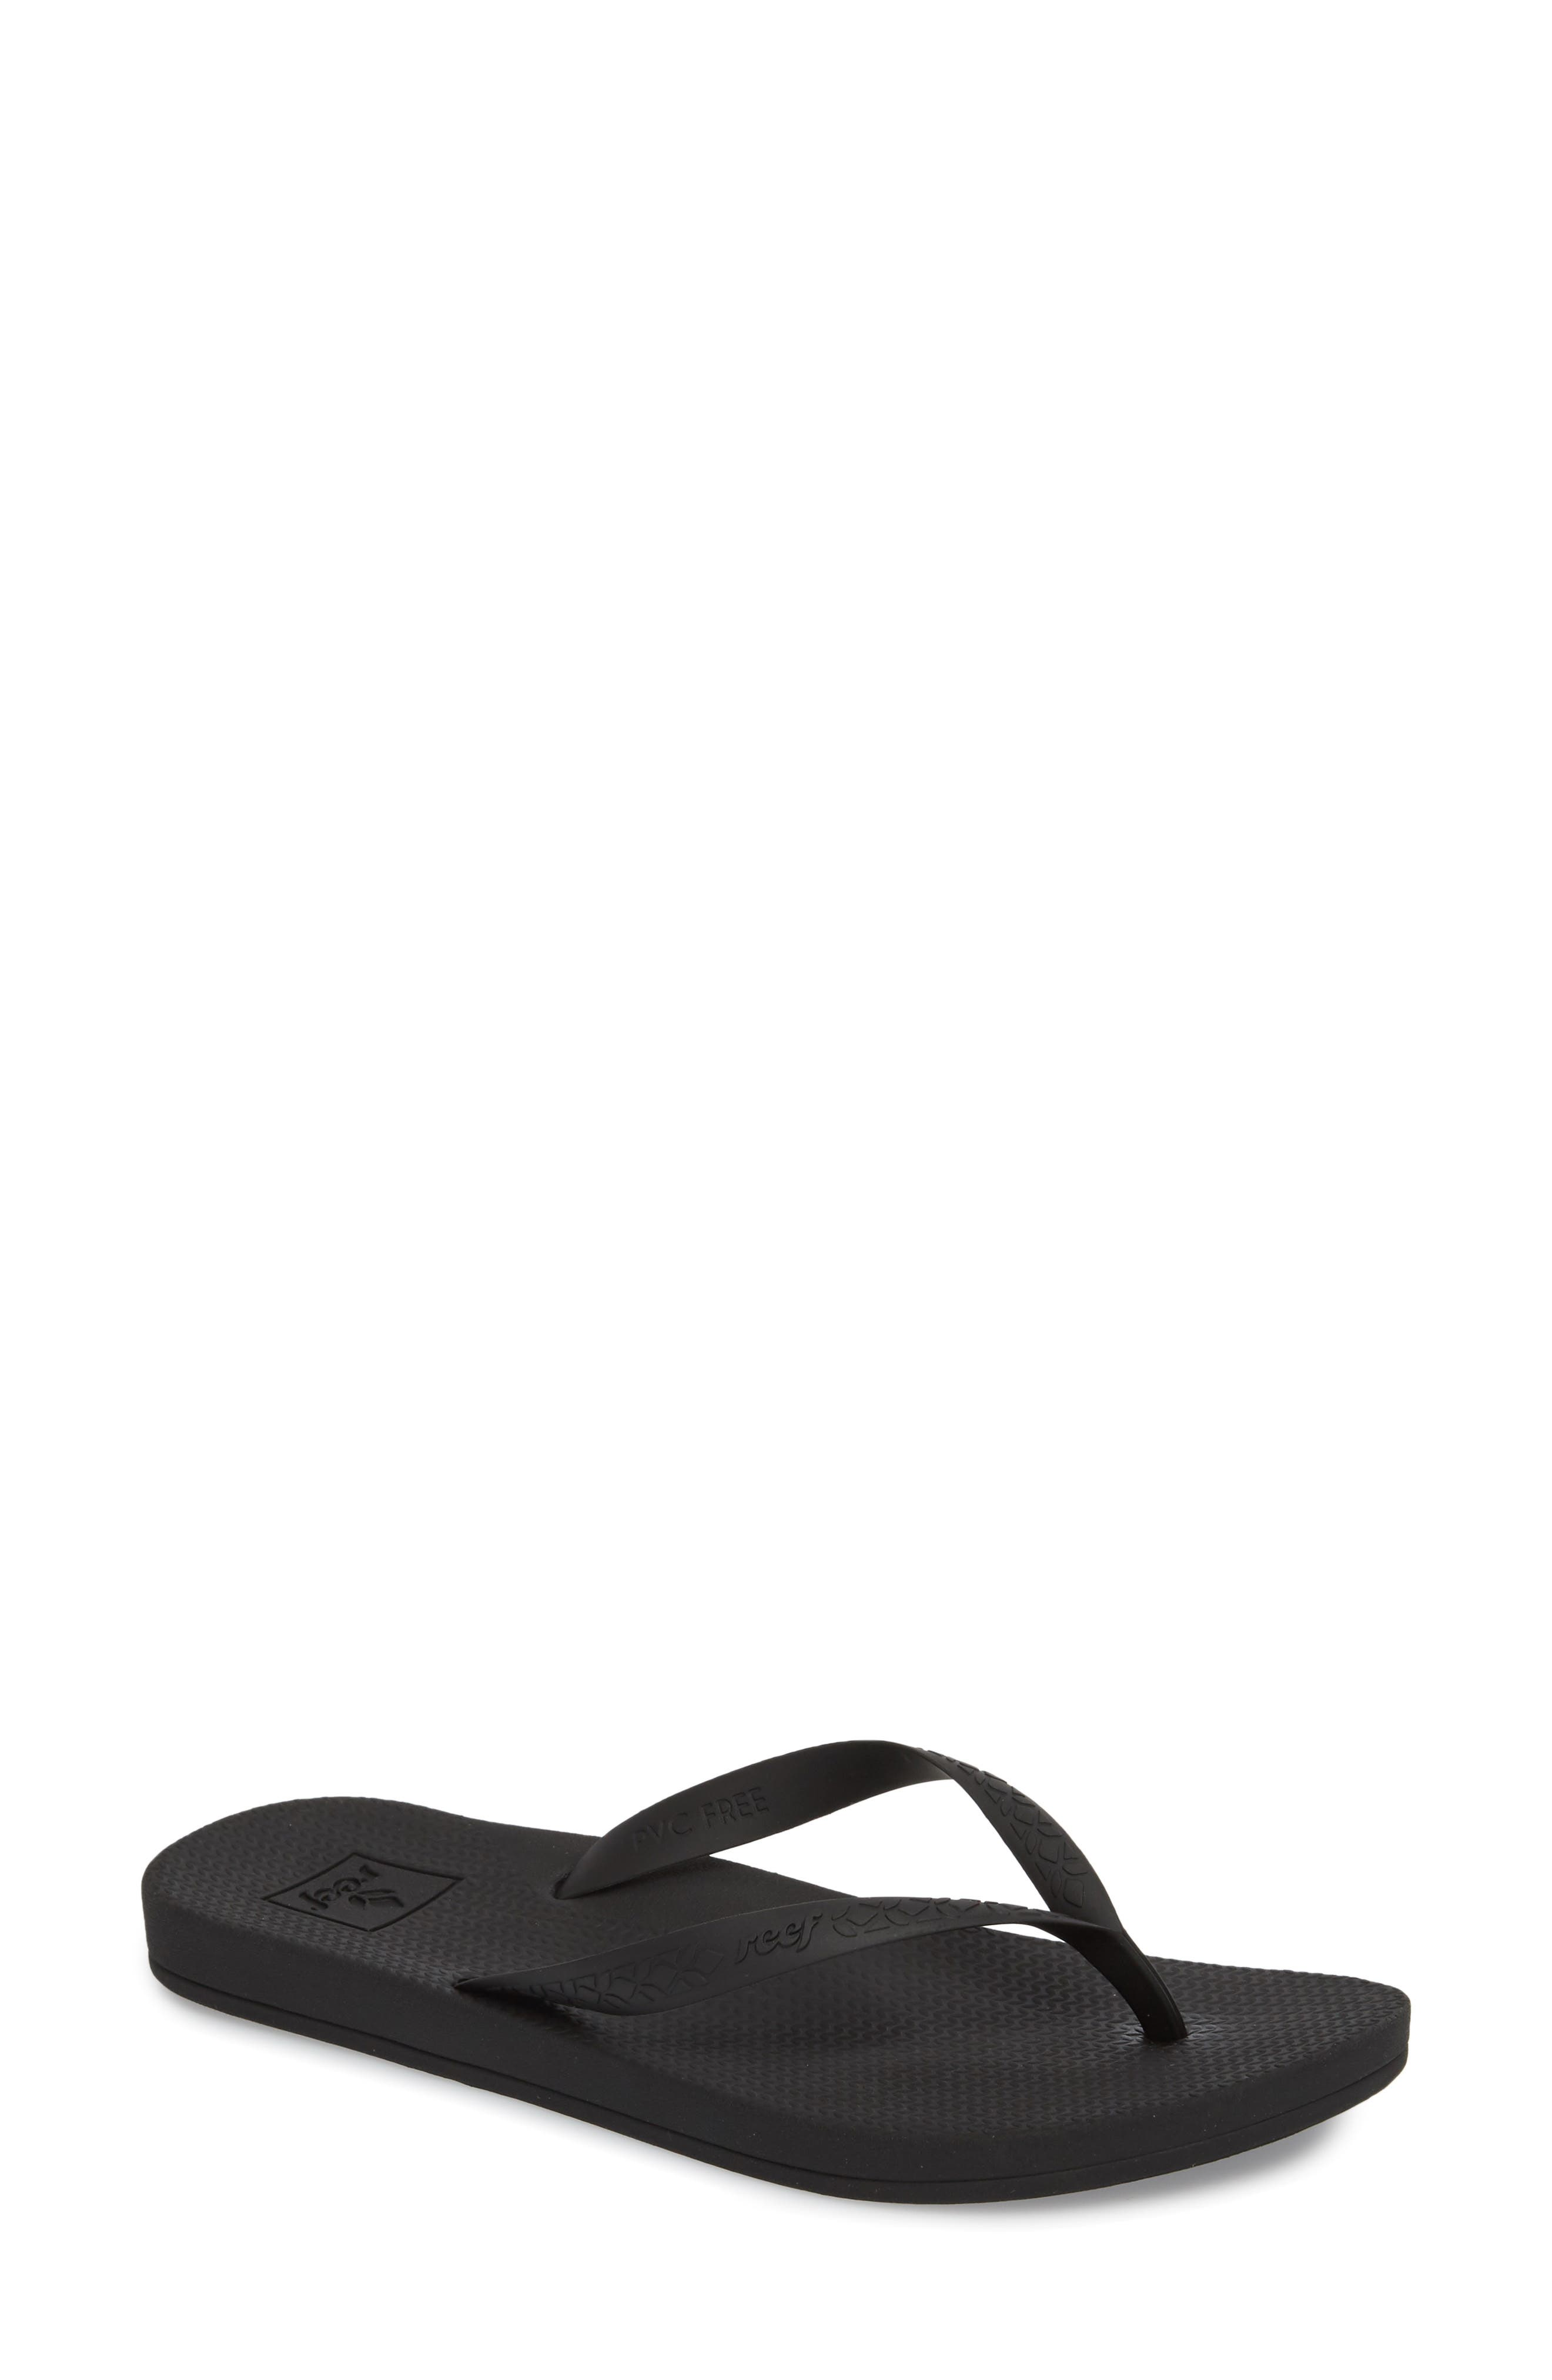 Escape Lux Flip Flop,                         Main,                         color, BLACK